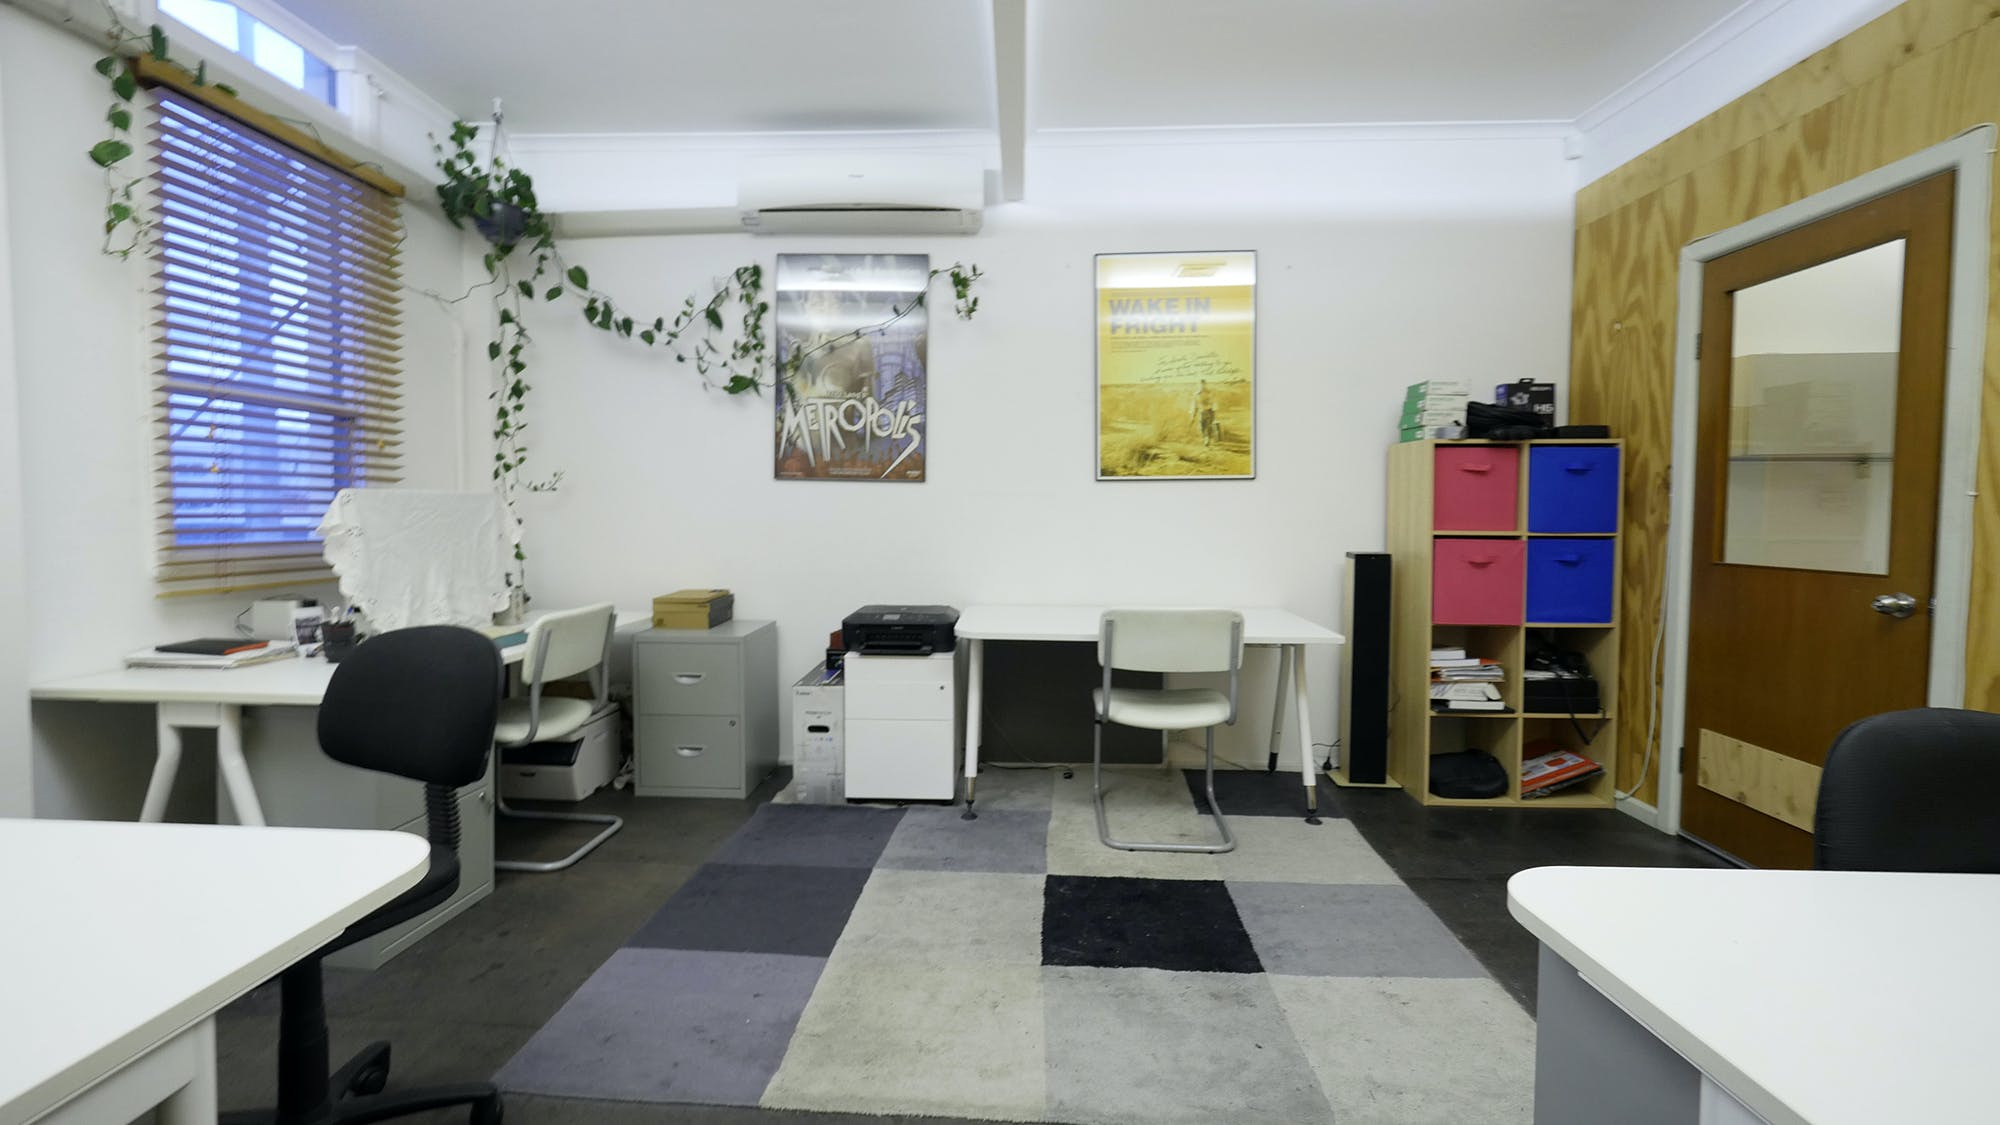 Co-working space, dedicated desk at Atticus media, image 1